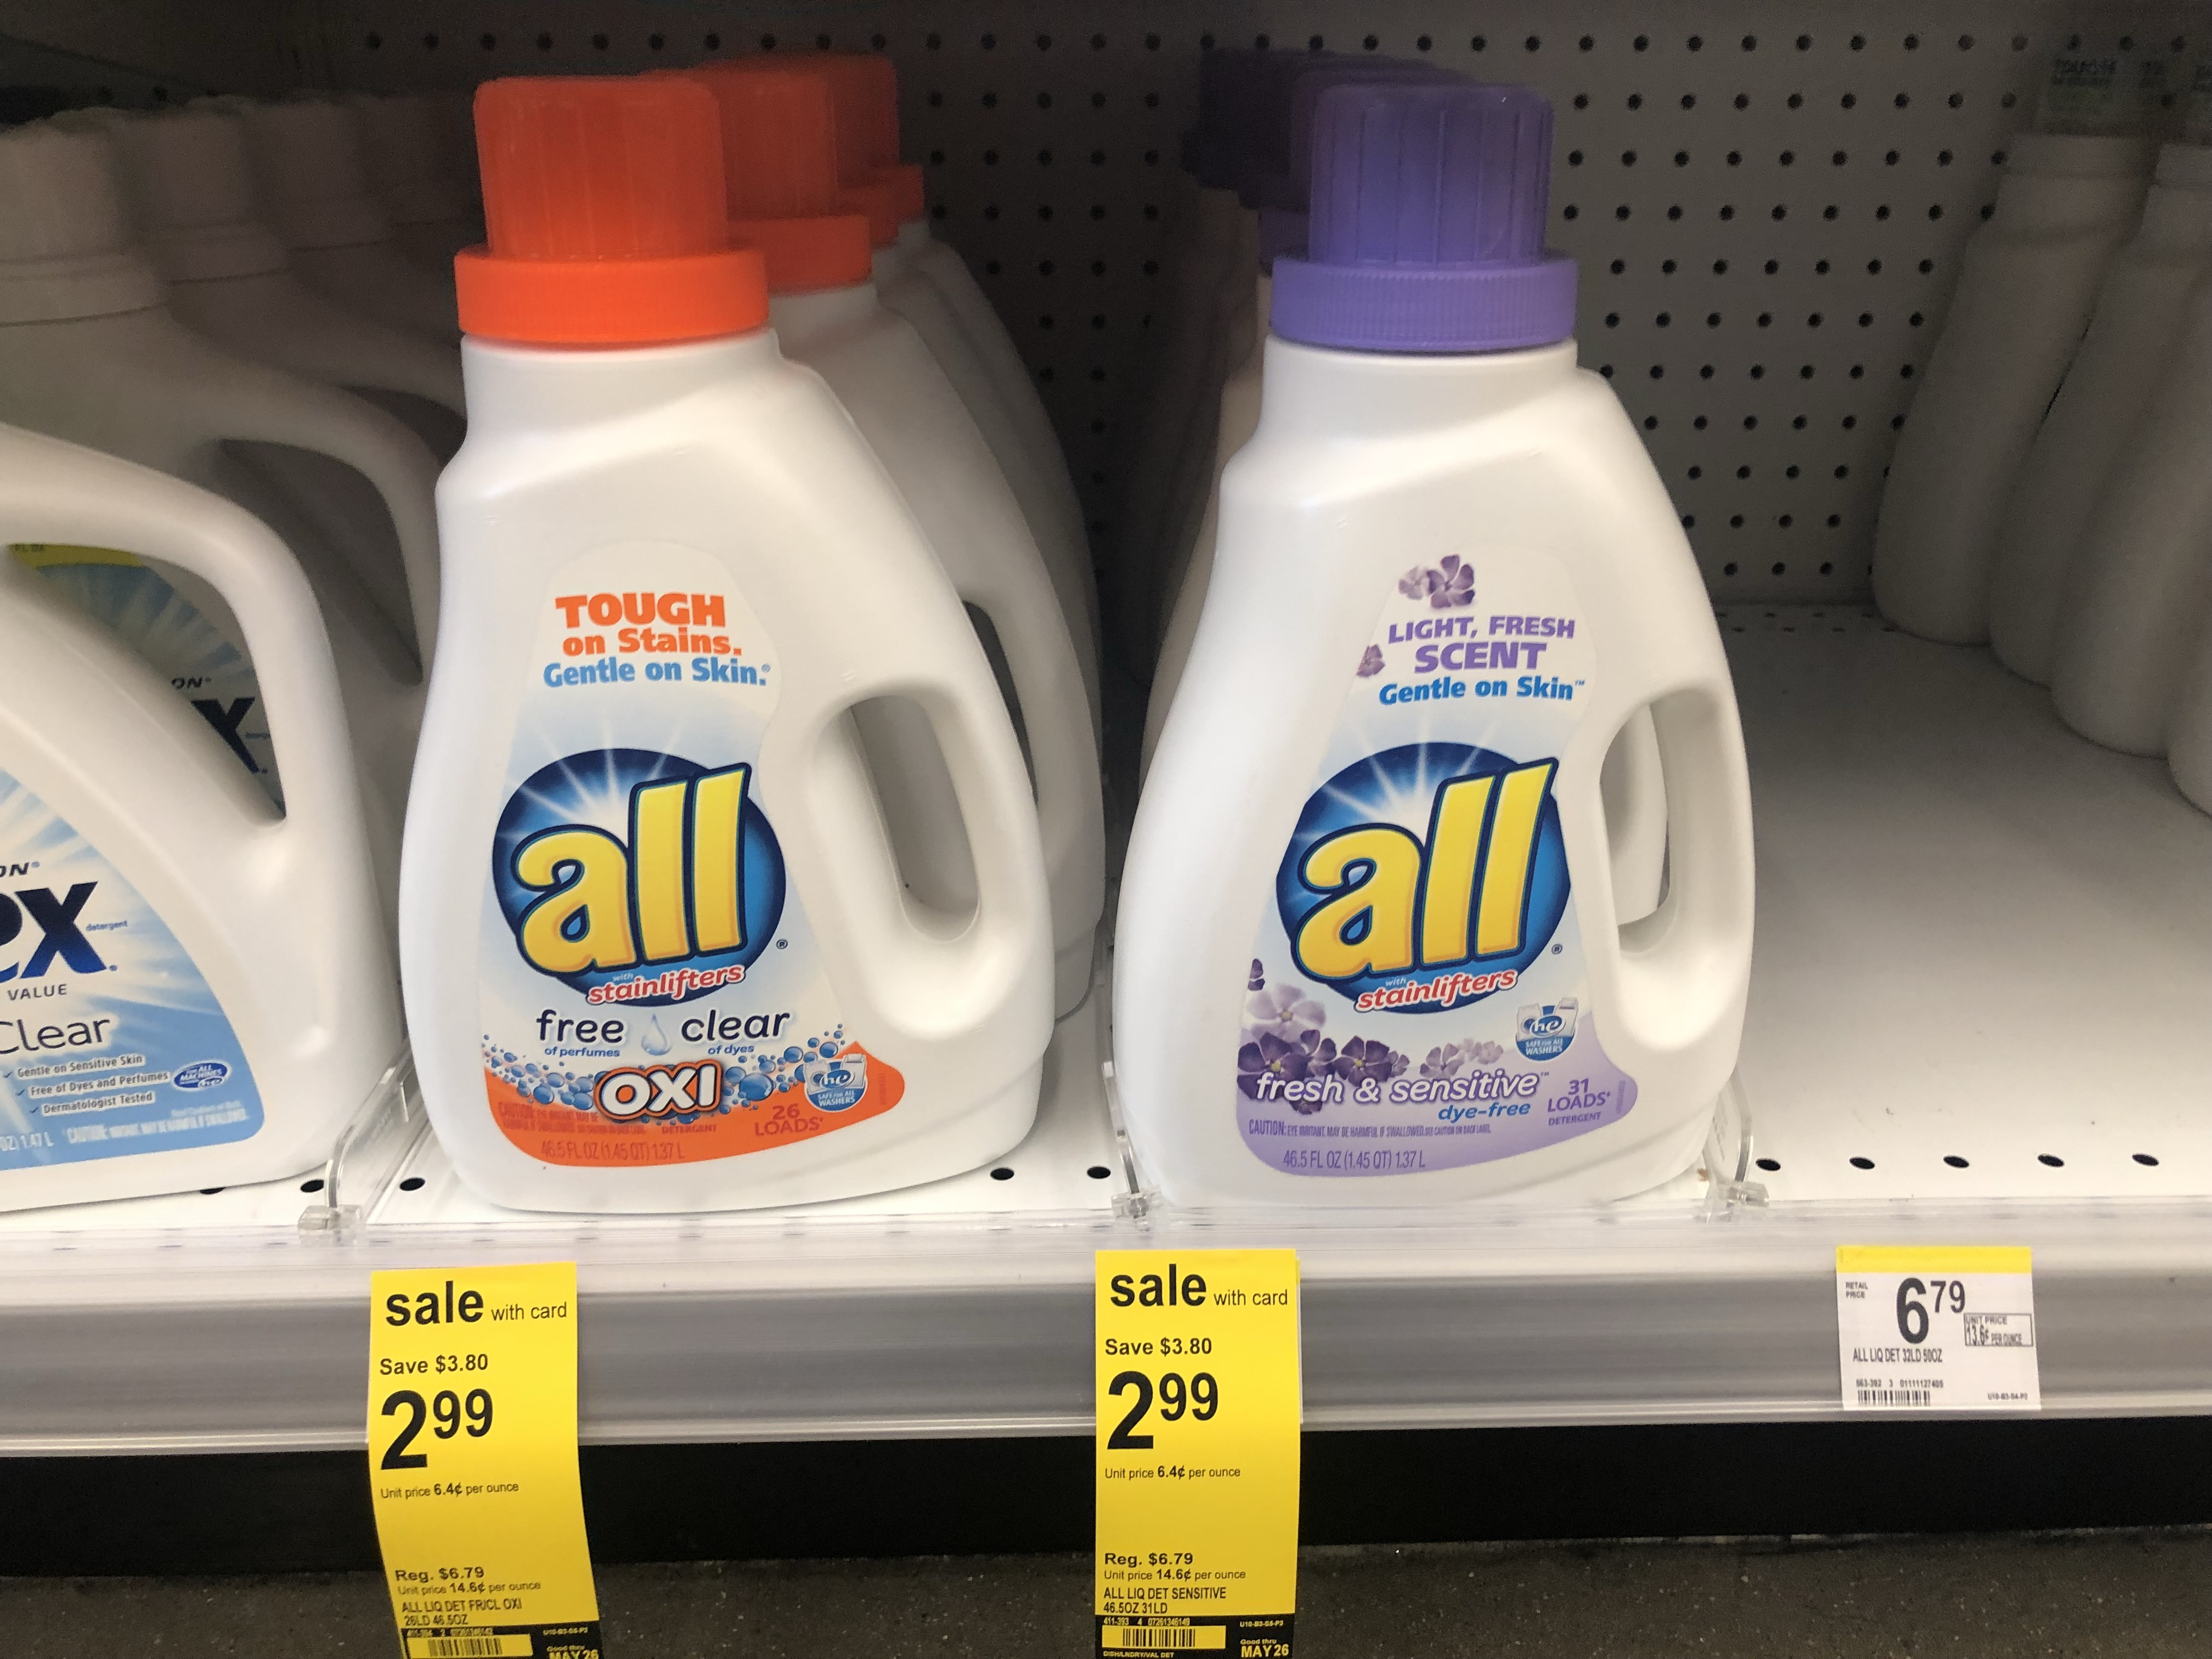 image relating to All Laundry Detergent Printable Coupons named Clean $1/1 All Laundry Detergent Coupon \u003d Simply just $1.99 at